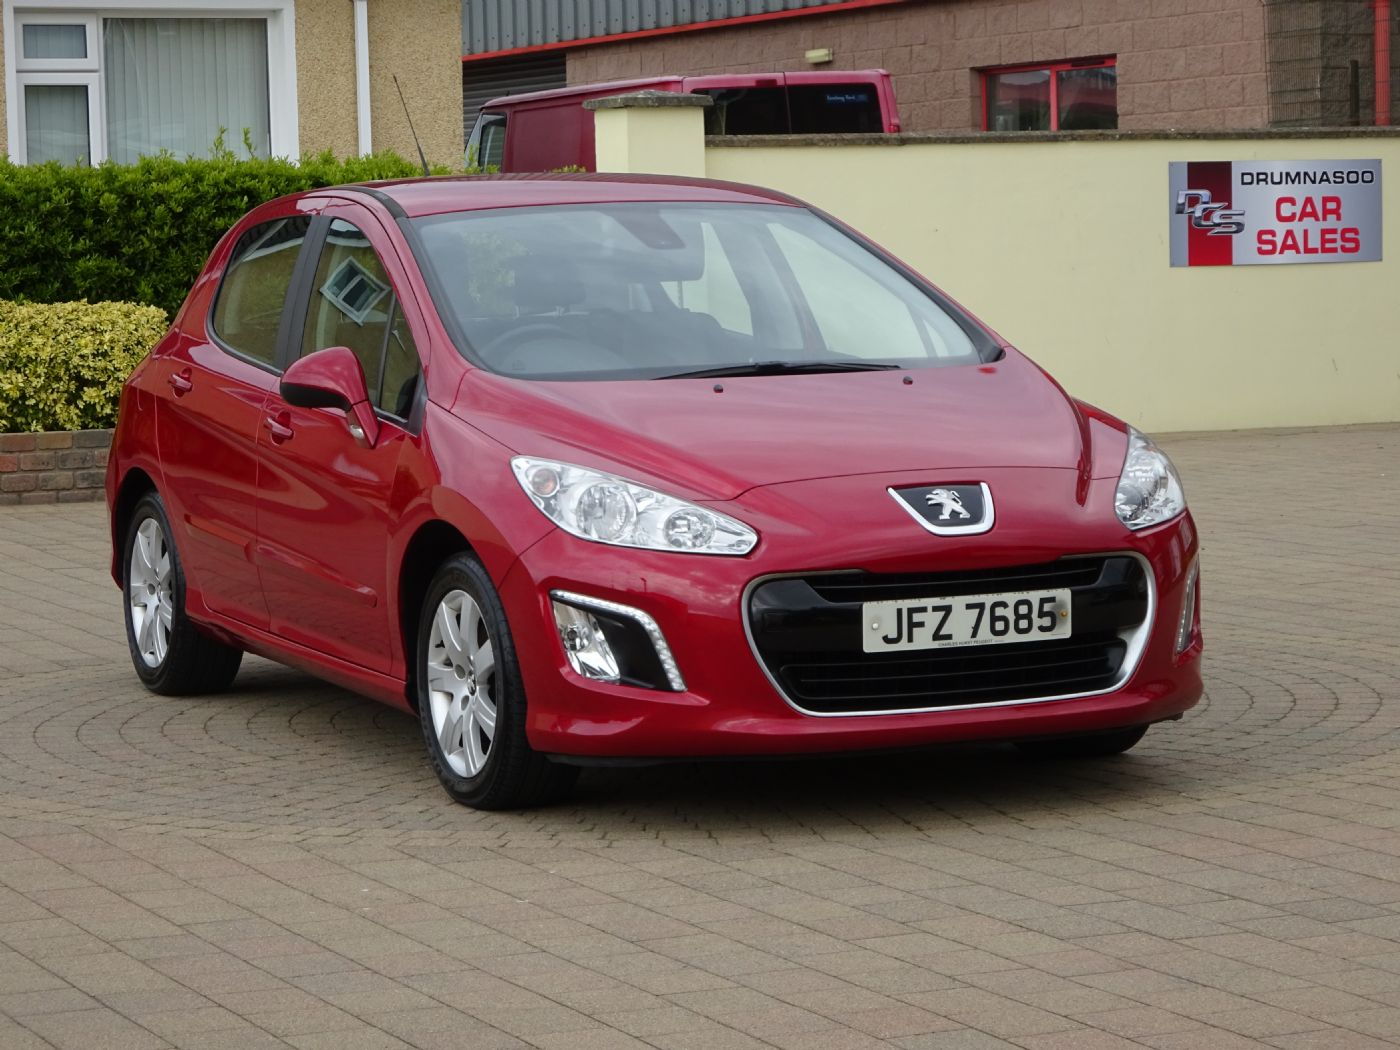 Peugeot 308 Active 1.6 HDI, £20 Road tax